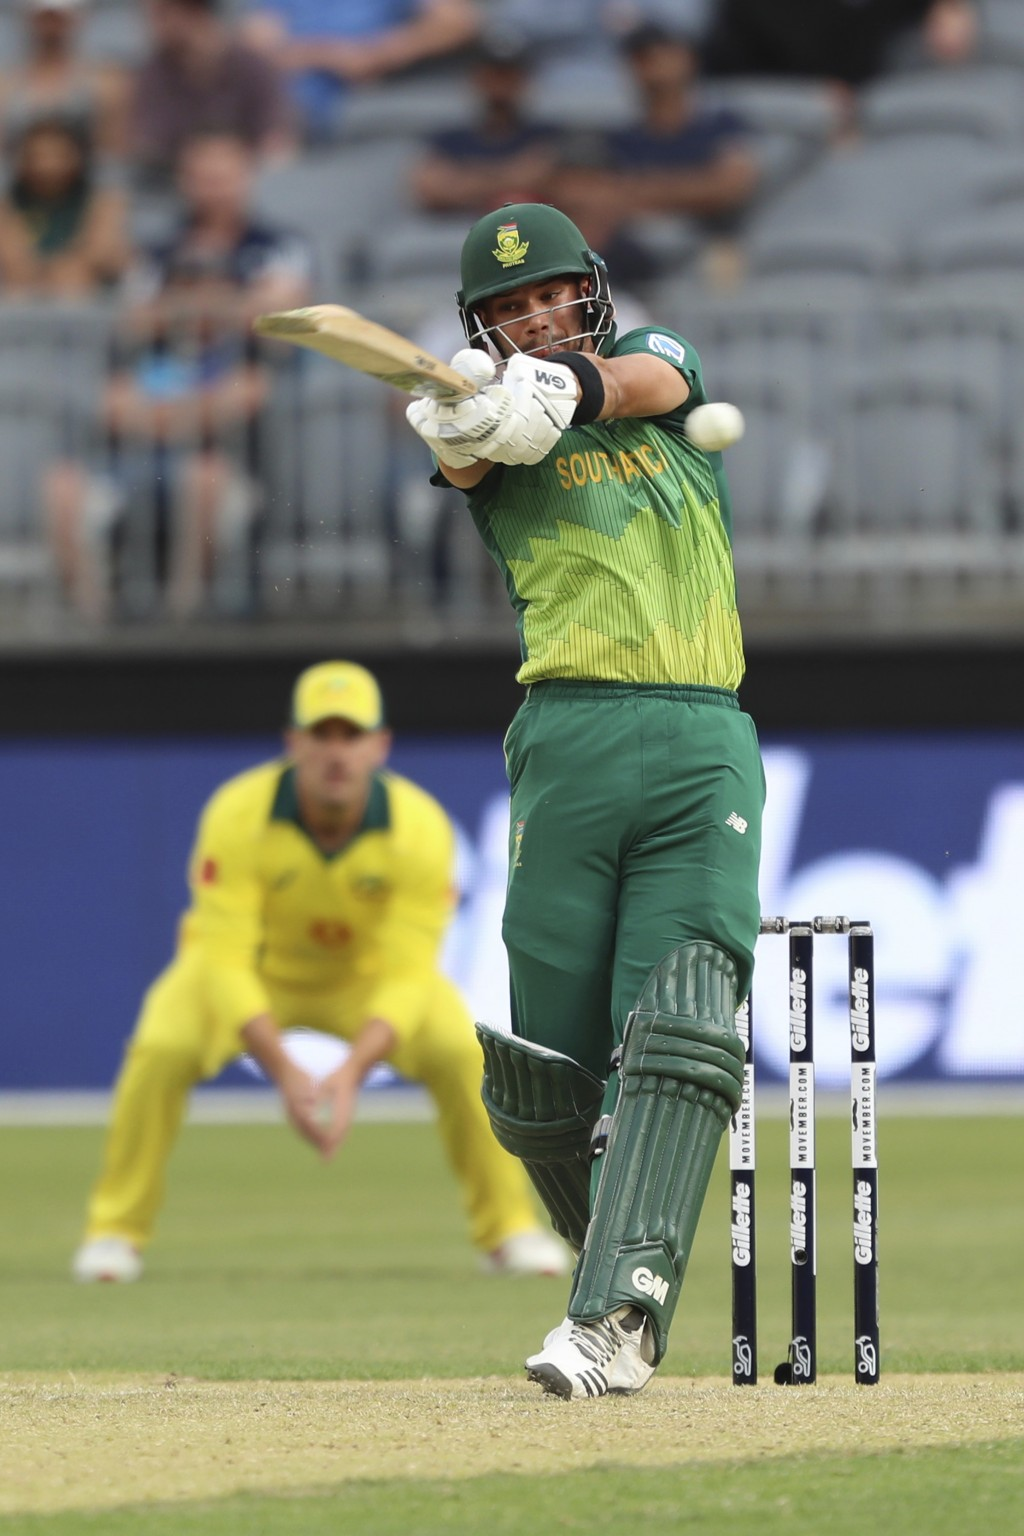 South Africa's Aiden Markram plays a shot from Australia's Josh Hazlewood during their one-day international cricket match in Perth, Sunday, Nov. 4, 2